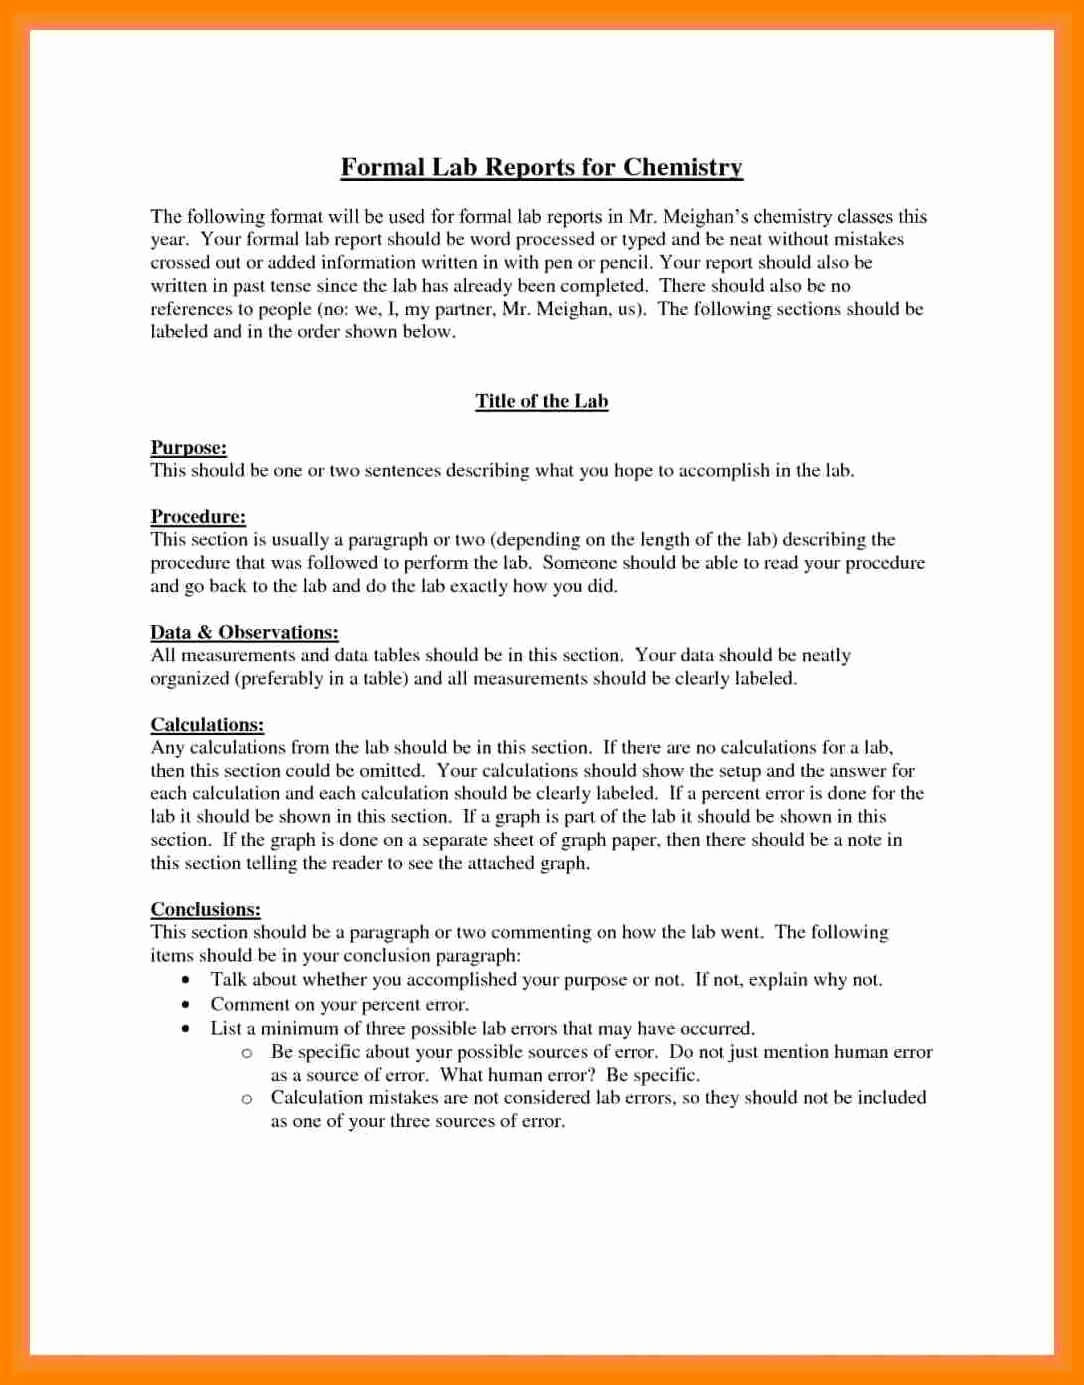 003 Formal Lab Report Example Best Write Up Template Of Pertaining To Formal Lab Report Template